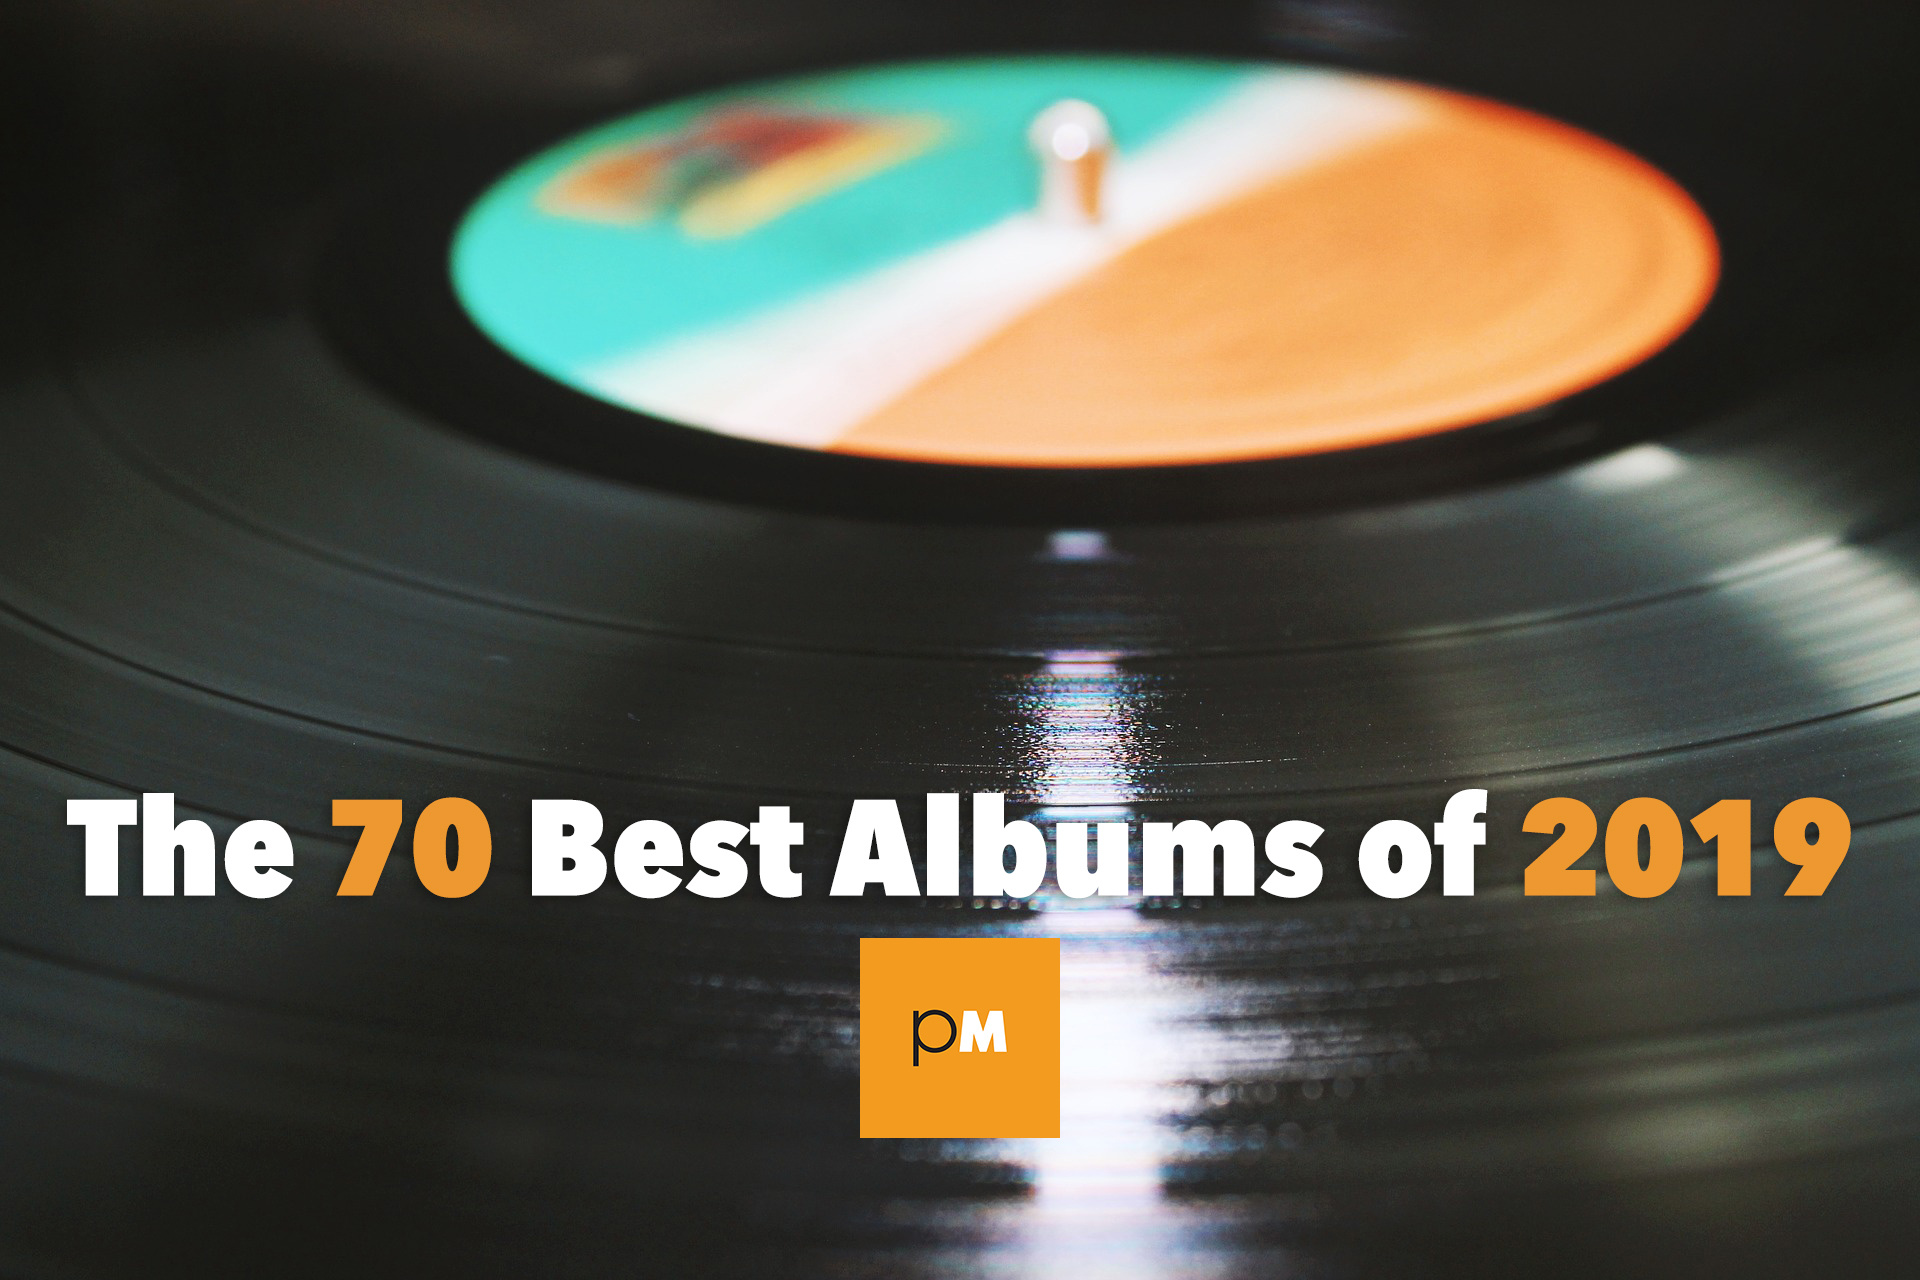 The 70 Best Albums of 2019